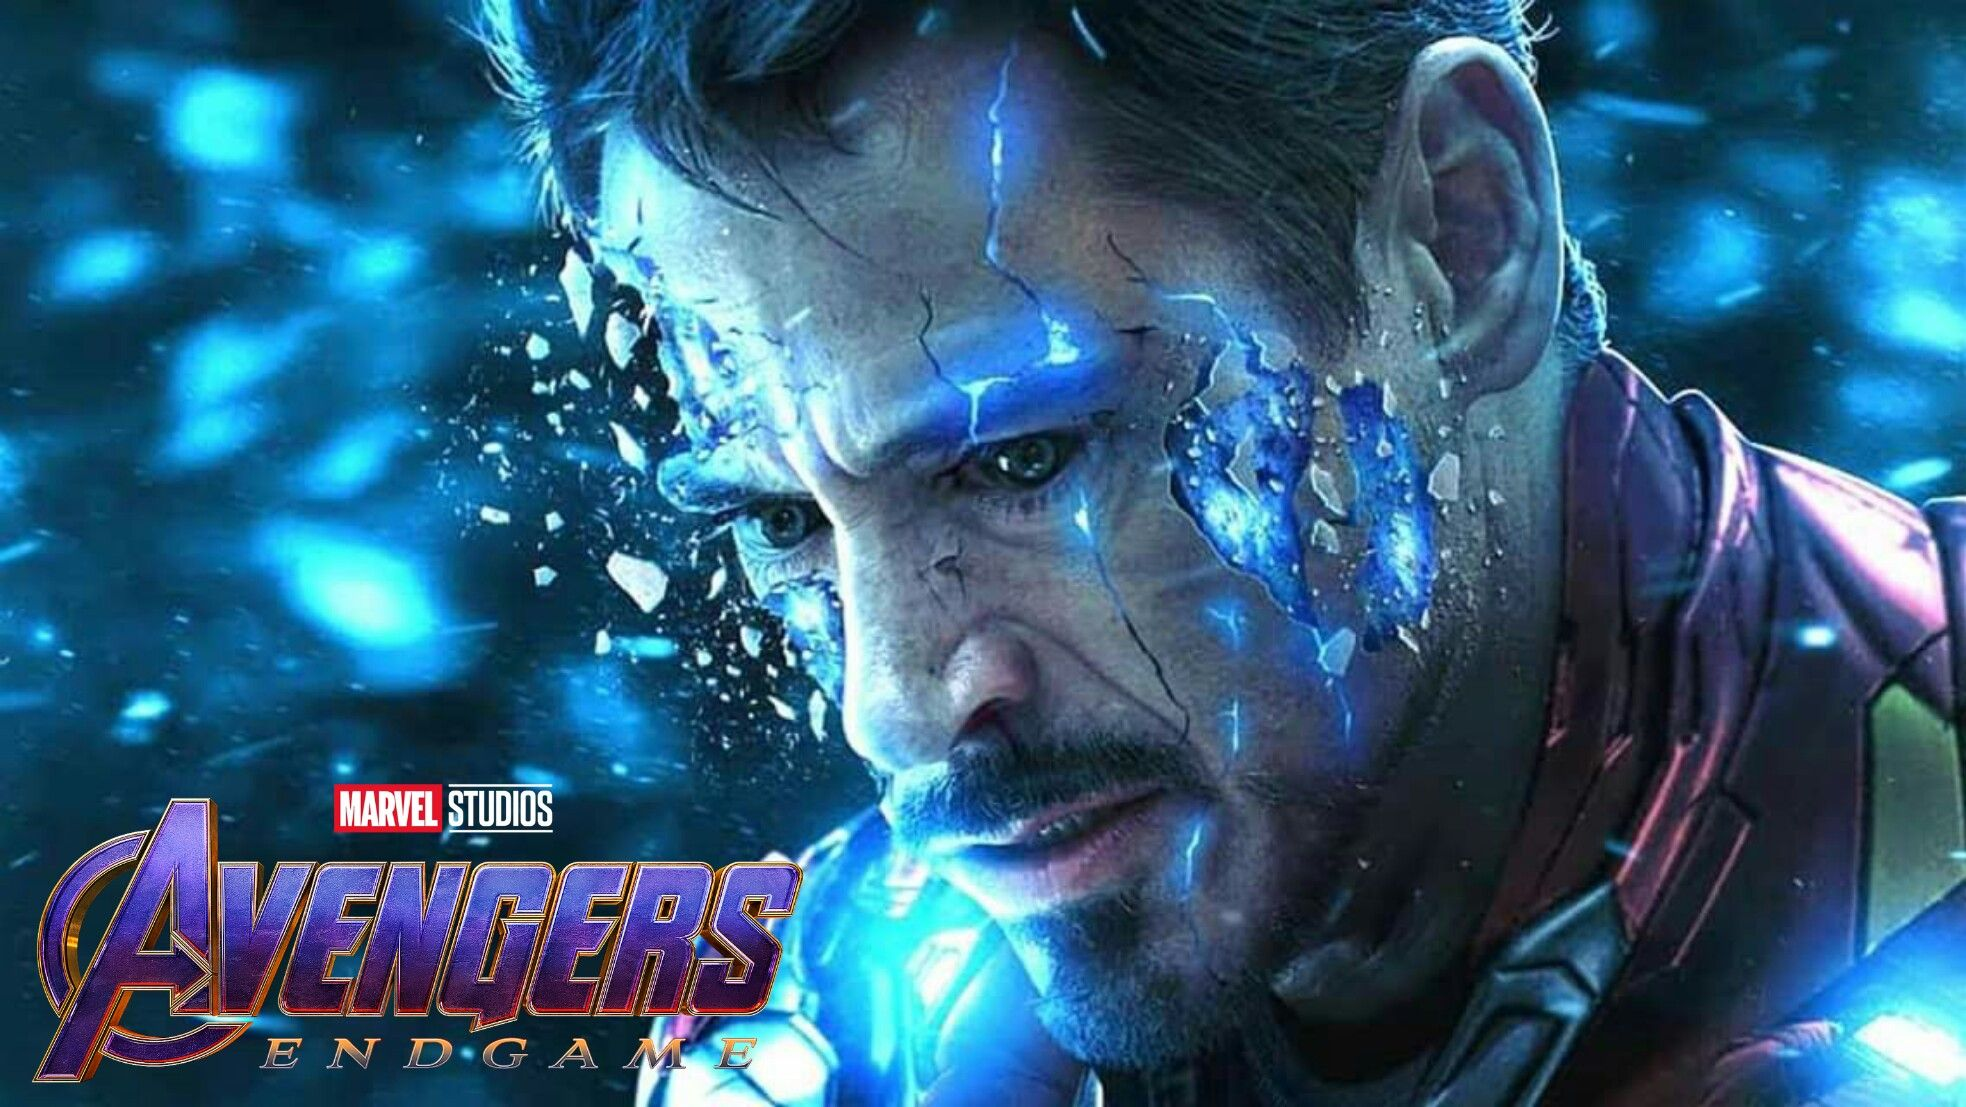 Pin by Στάθης on avengers endgame in 2020 New movies to